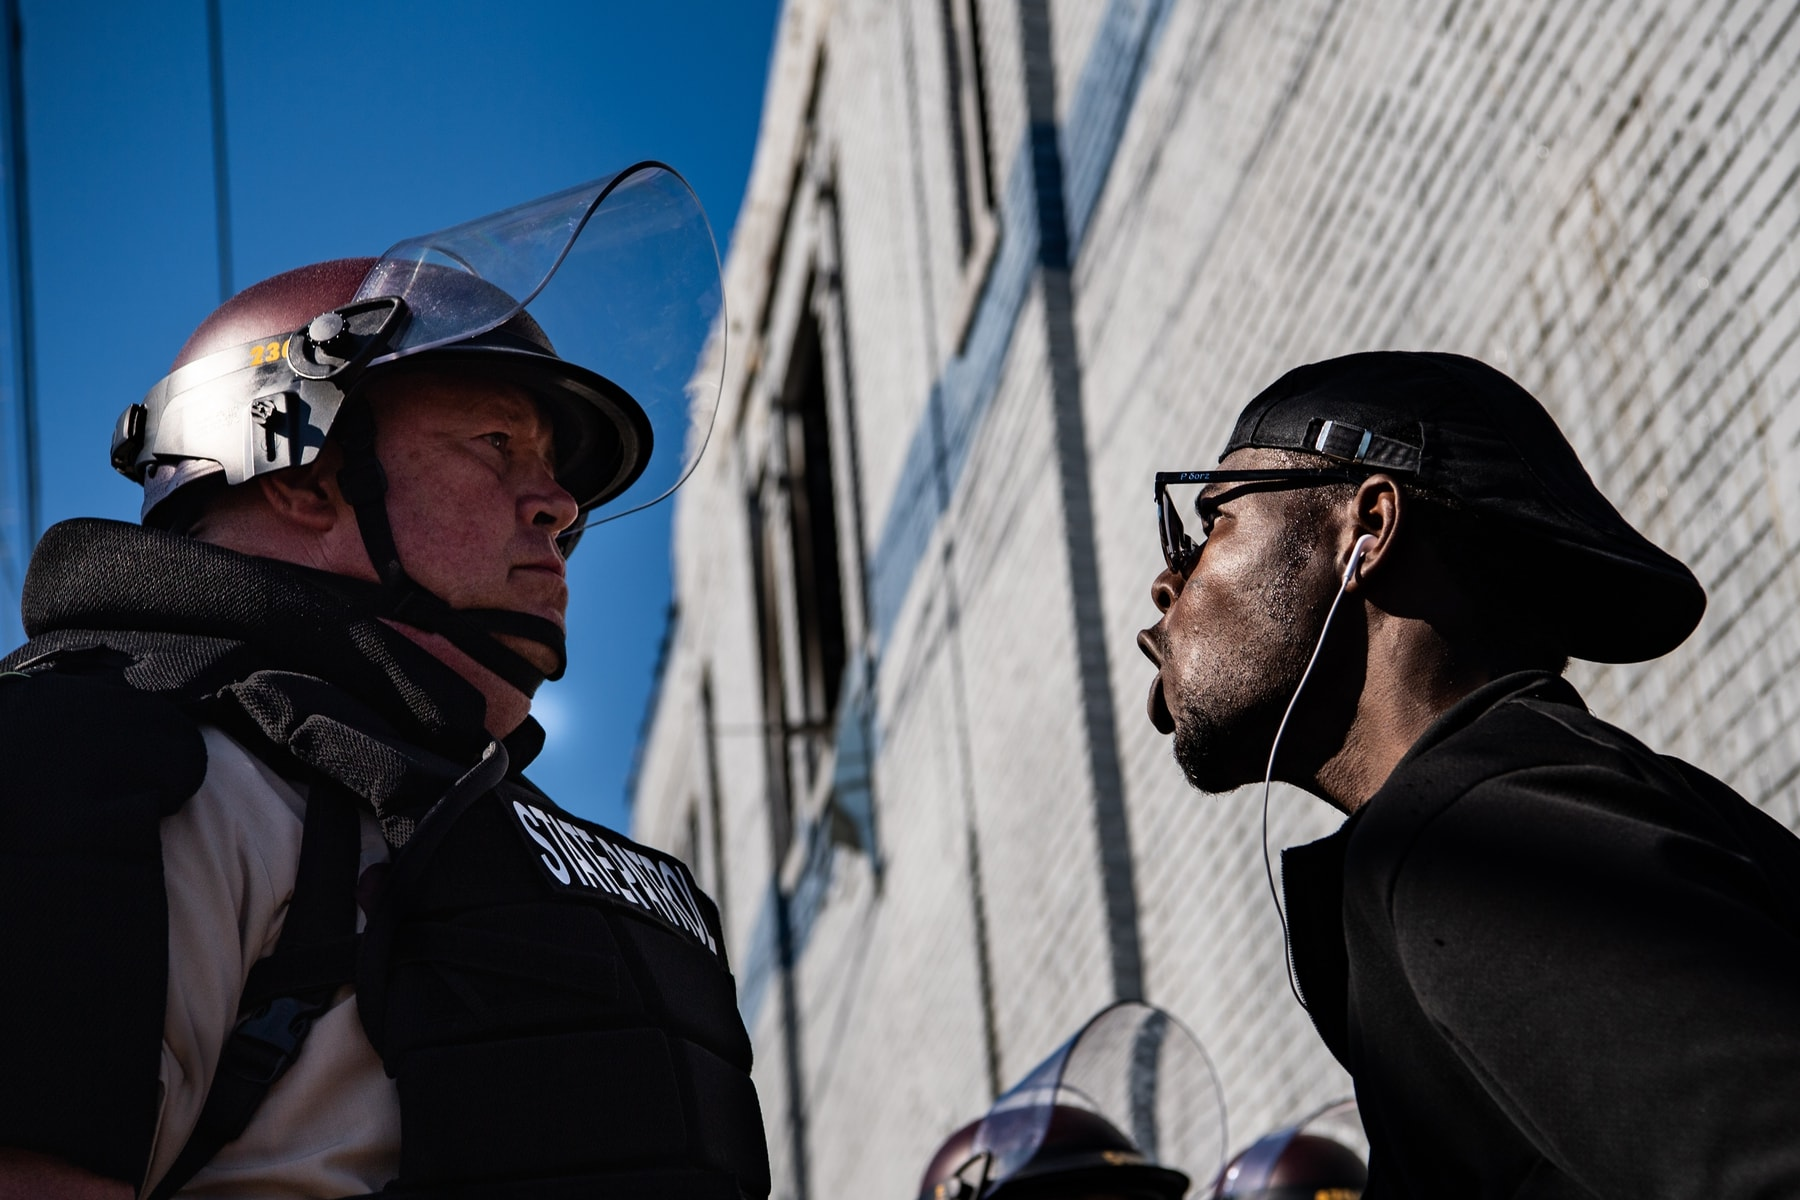 Results of study on police racism was presented in the US